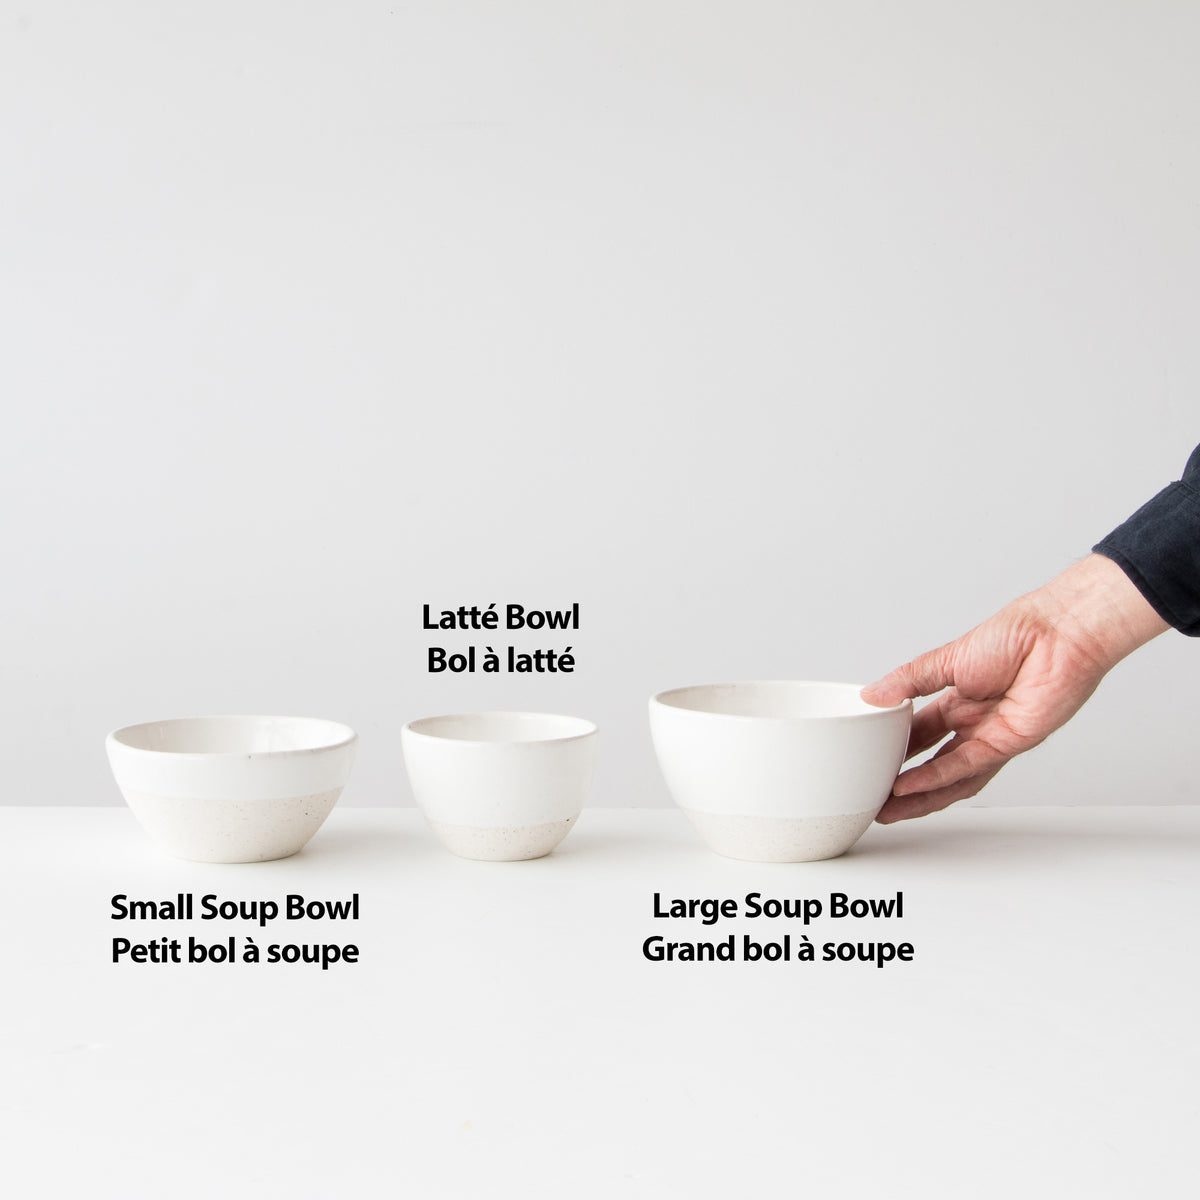 Atelier Trema Ceramic Bowls Shapes - Latté, Small Soup, Large Soupe Bowls